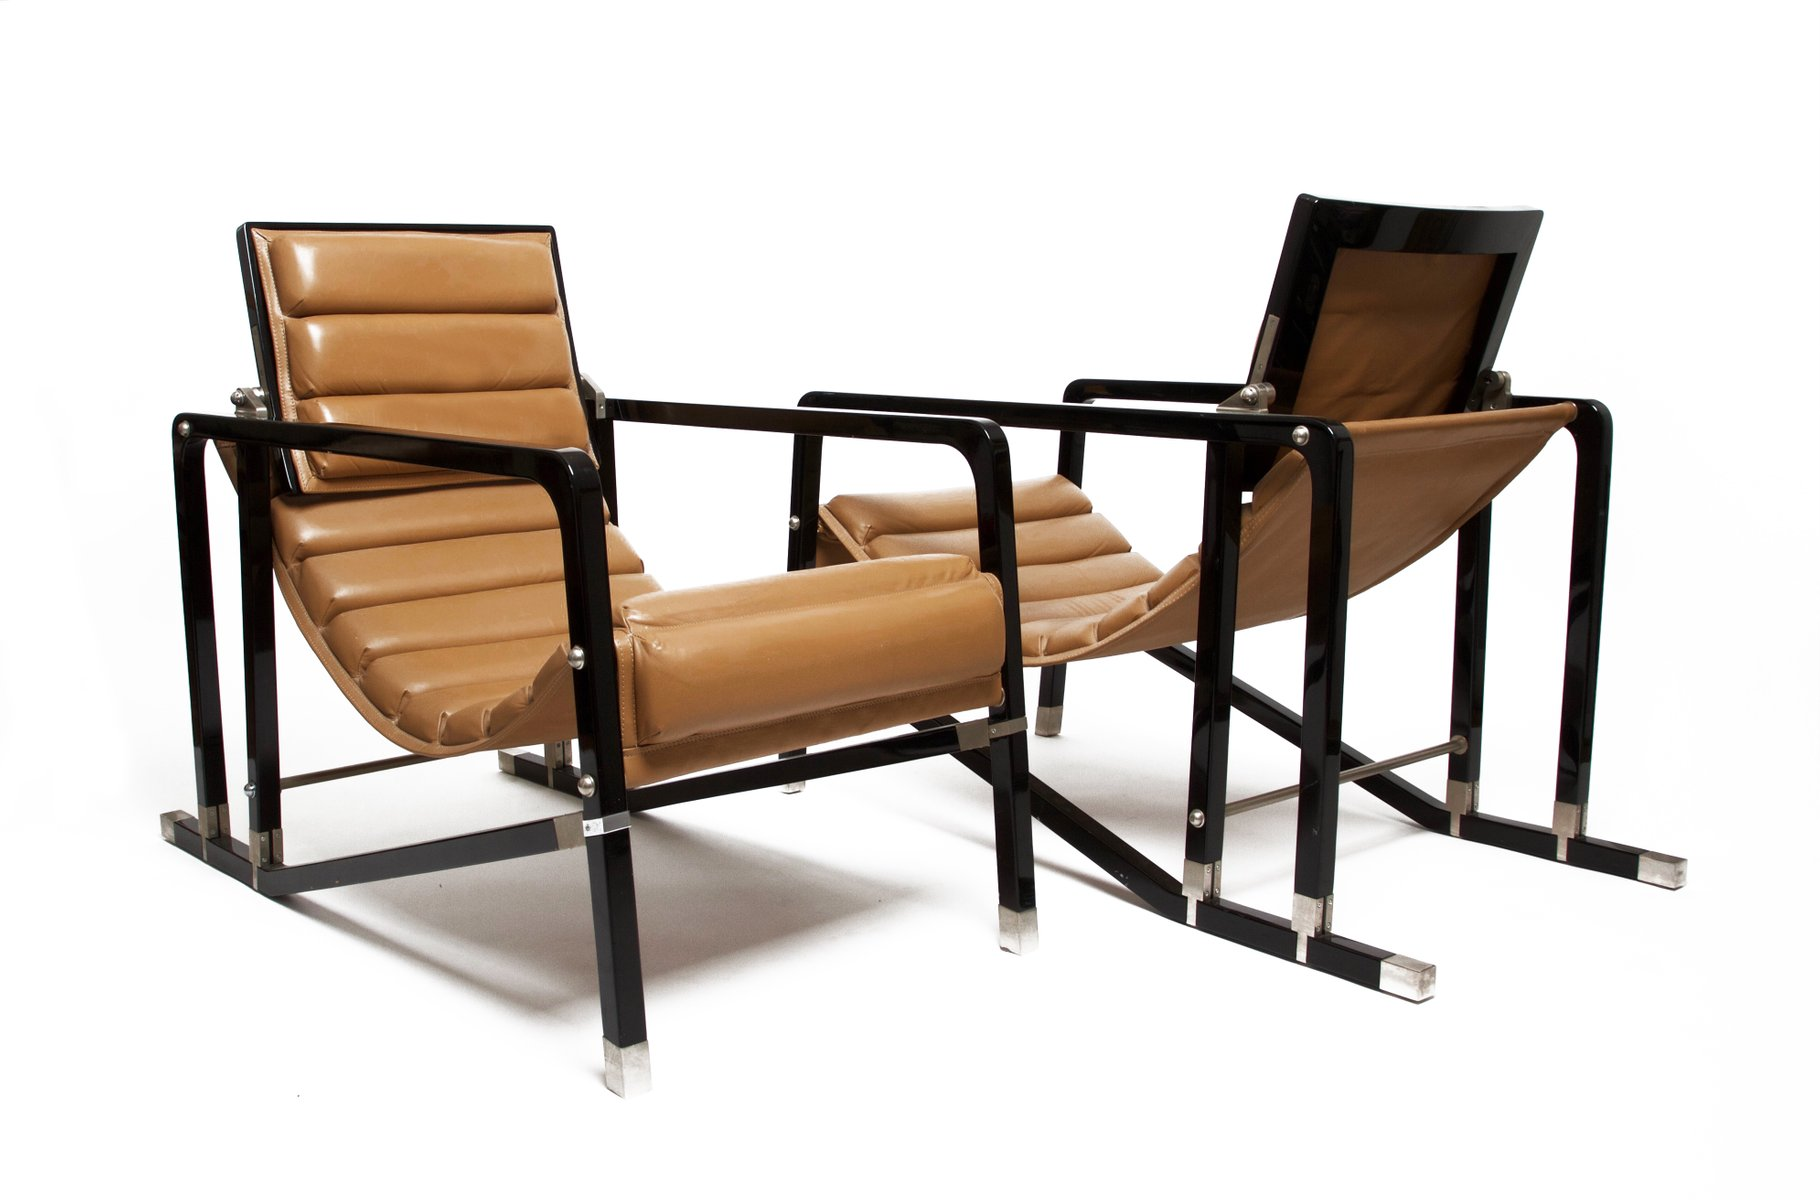 Transat chairs by eileen gray for ecart international for 1980s furniture design